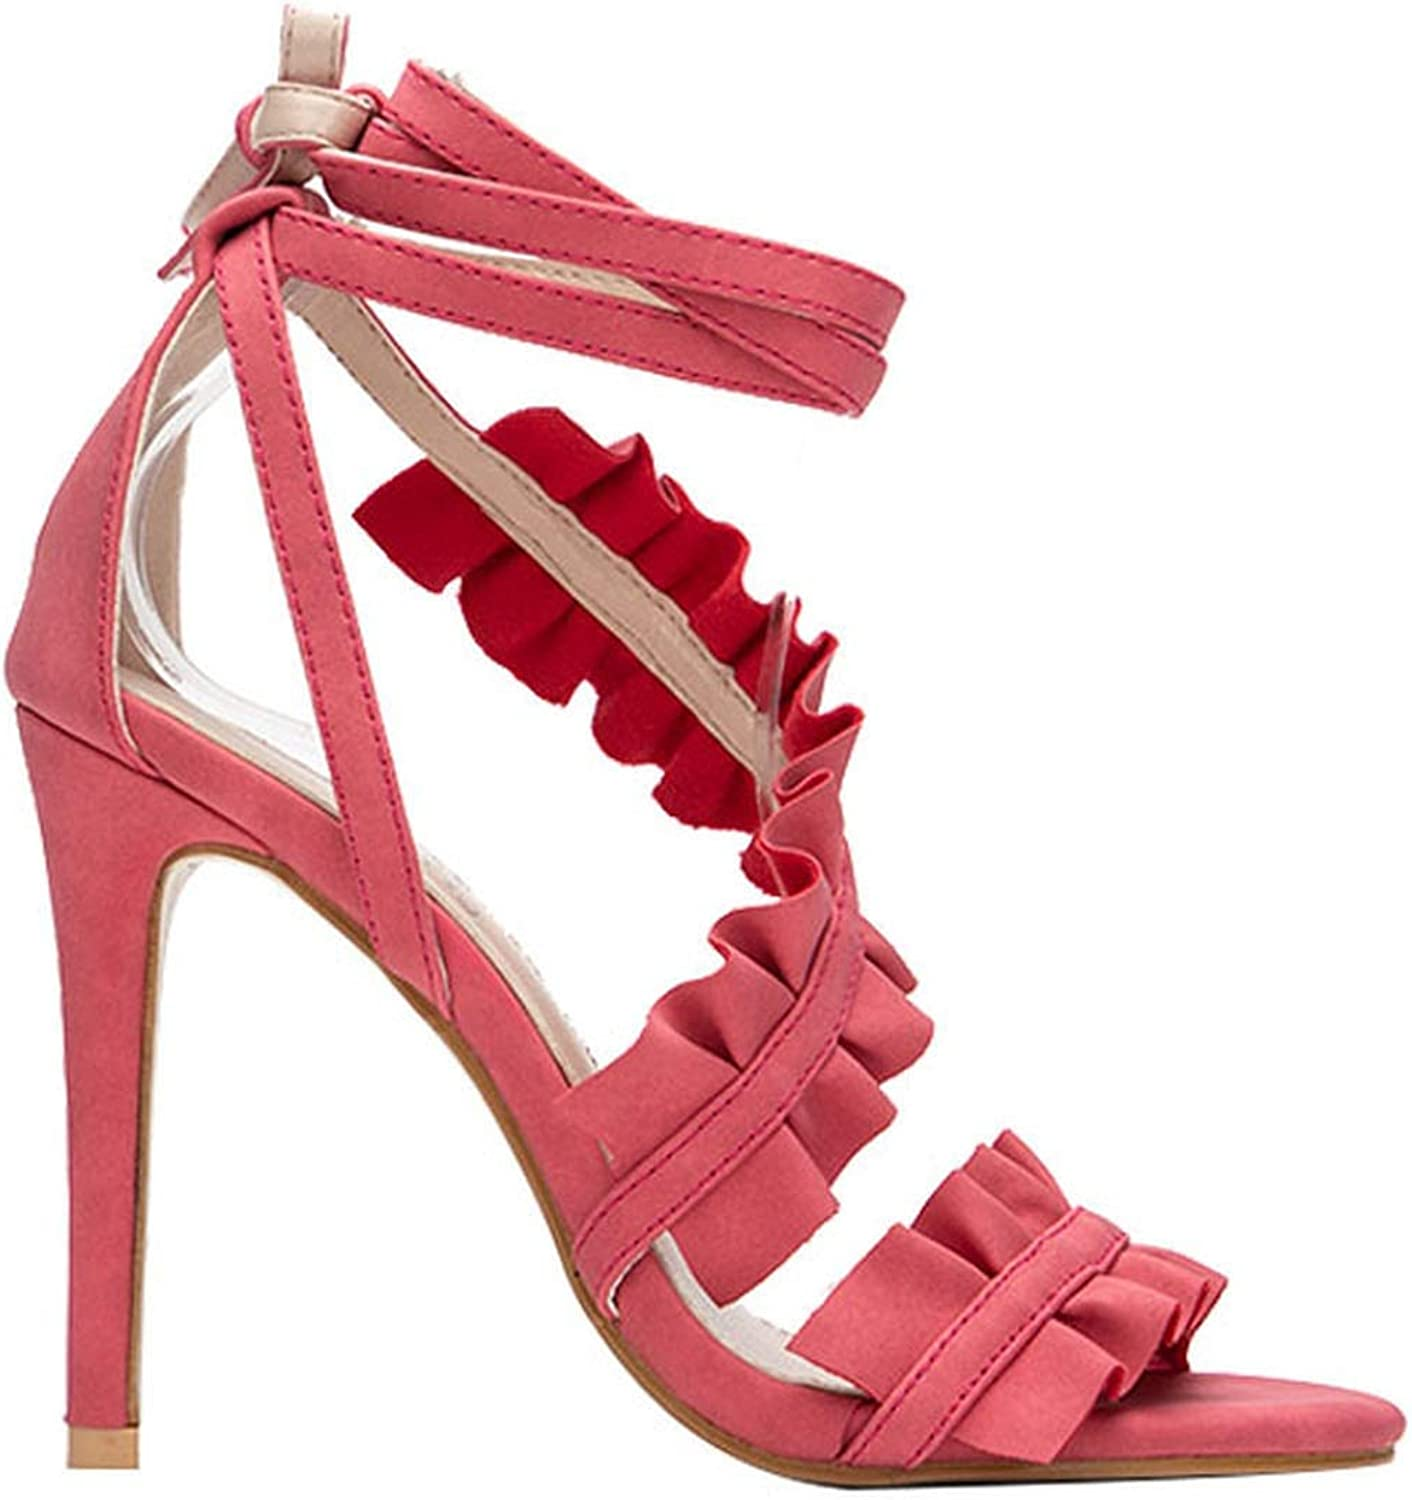 Ankle Strap High Heels Sandals Women Ruffles Sandals Summer shoes Solid Lace-Up Chaussure Talon